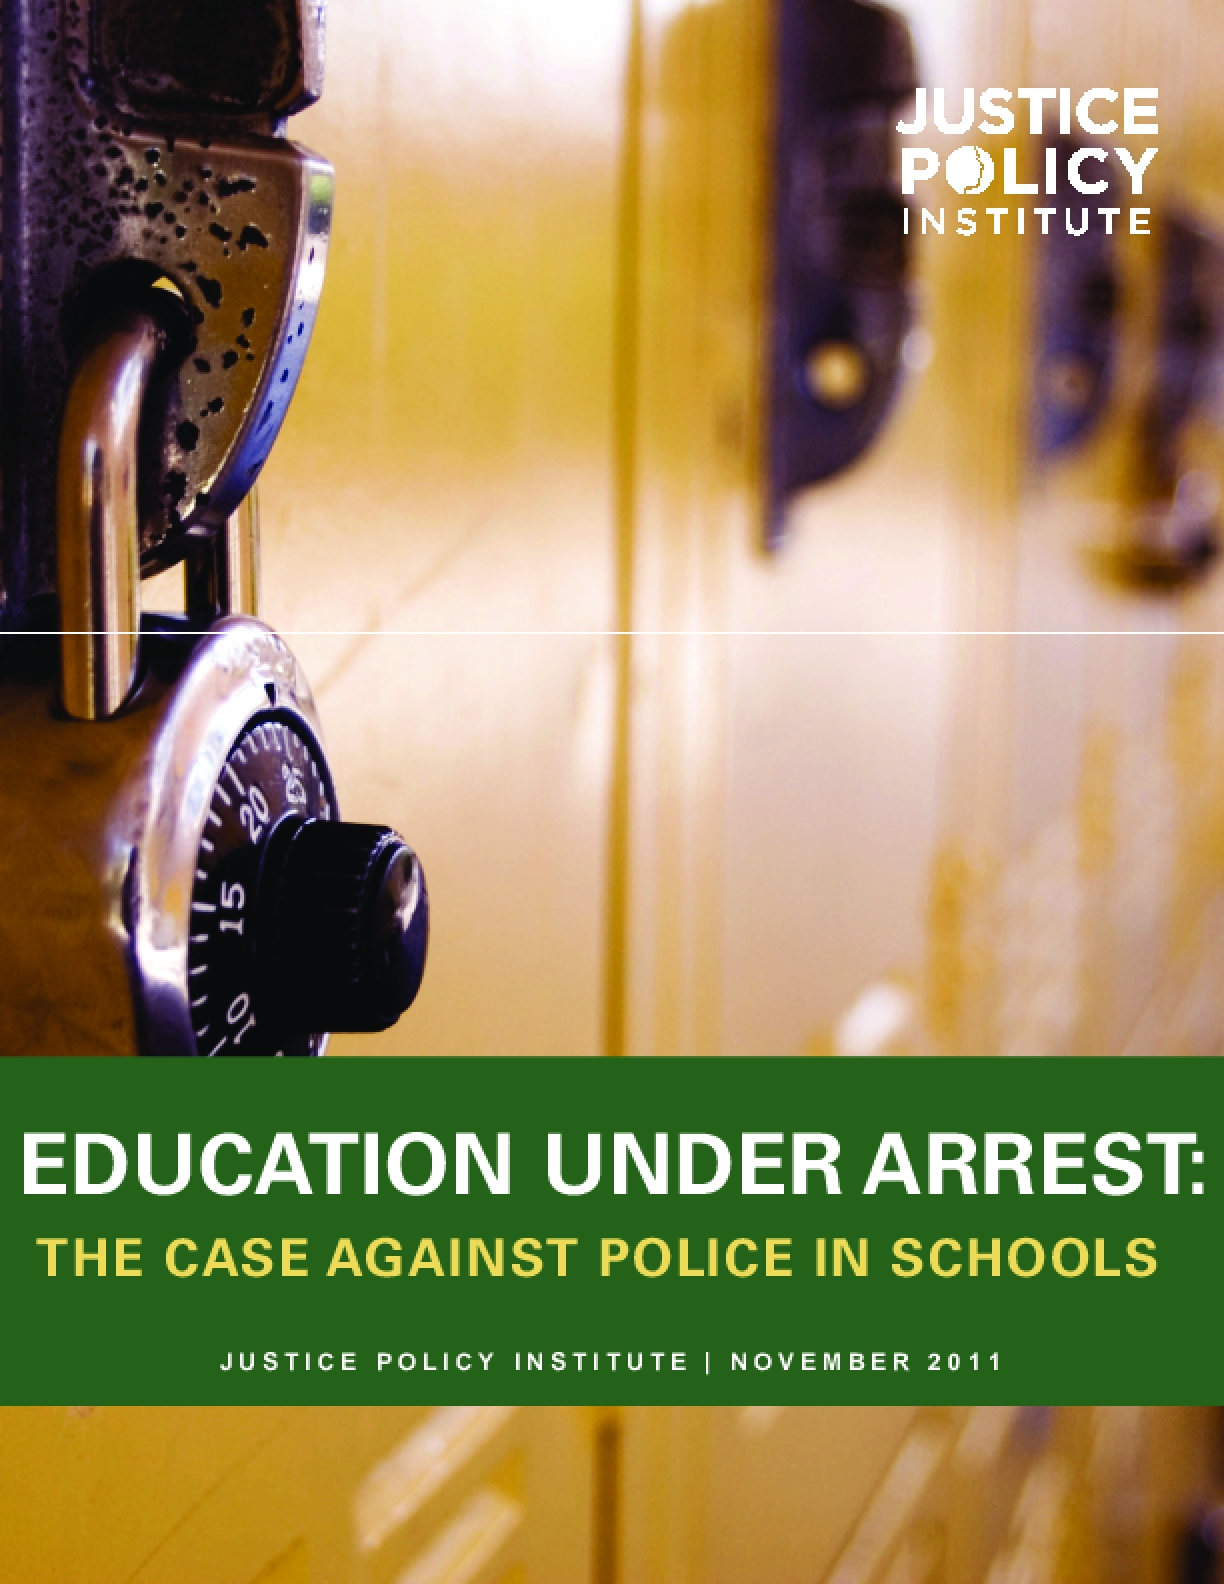 Education Under Arrest: The Case Against Police in Schools